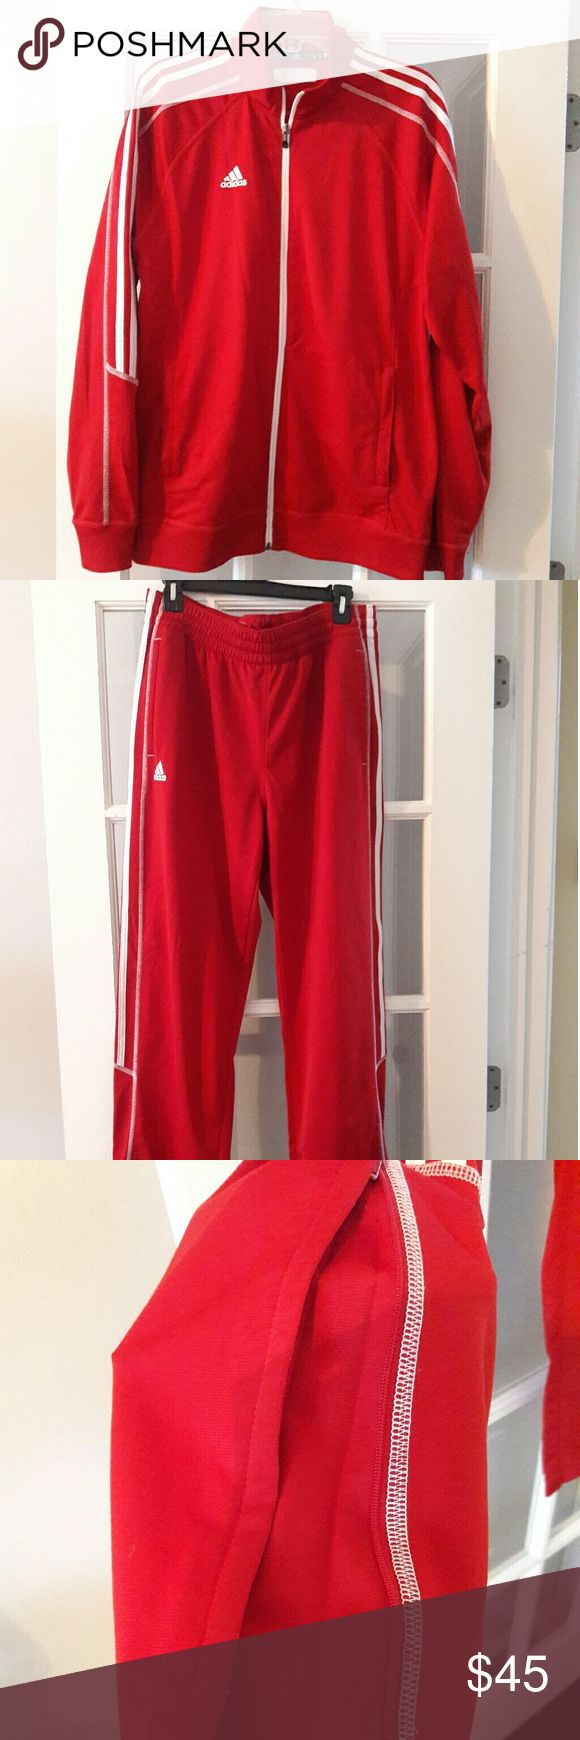 "ADIDAS red men jogging suit. Adidas red jogging suit with zipper on the side of pants (fake zipper) sleeves are approximately 32"" long from neck to bottom of sleeve. Pants approximately 42""L and top of pants 16"" wide. Very clean and gently worn. Must son wore it for basketball, that's why the #25 is on the label. Adidas Pants"